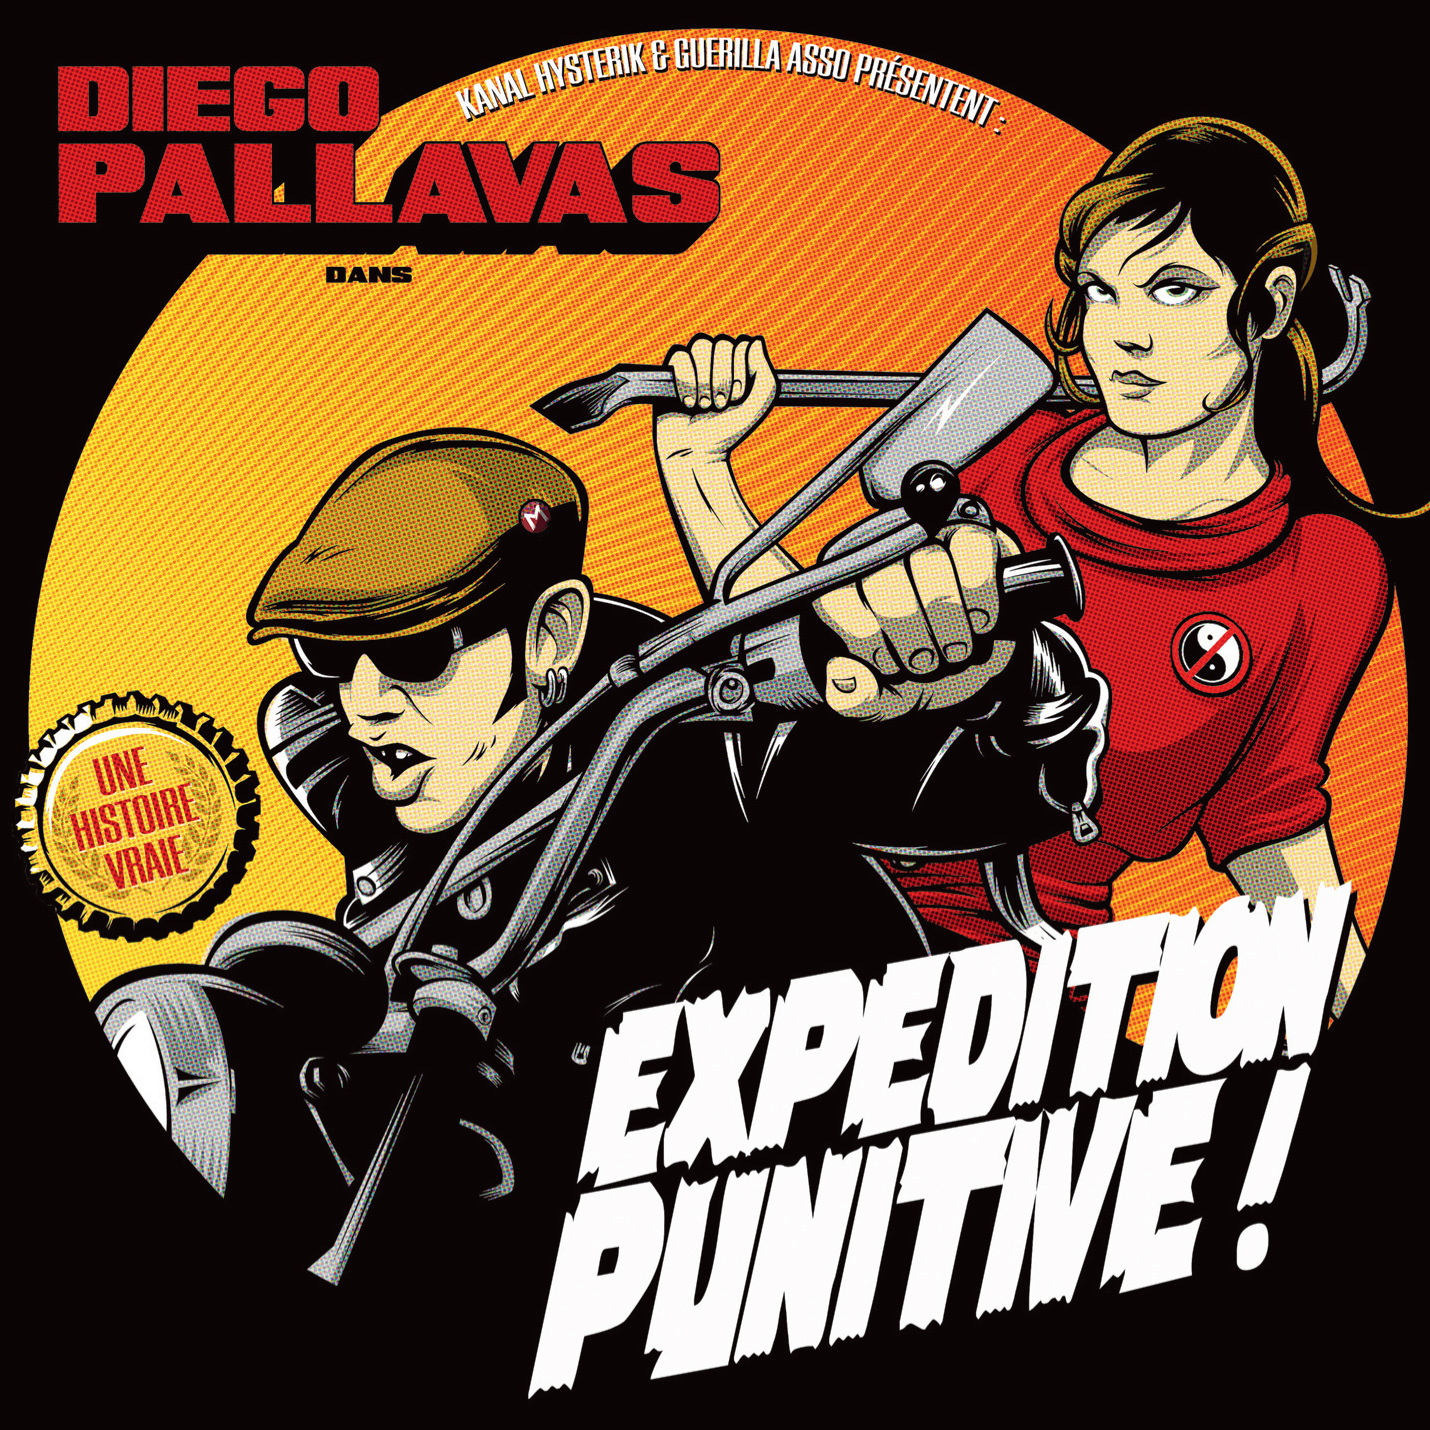 Diego Pallavas - Expedition punitive